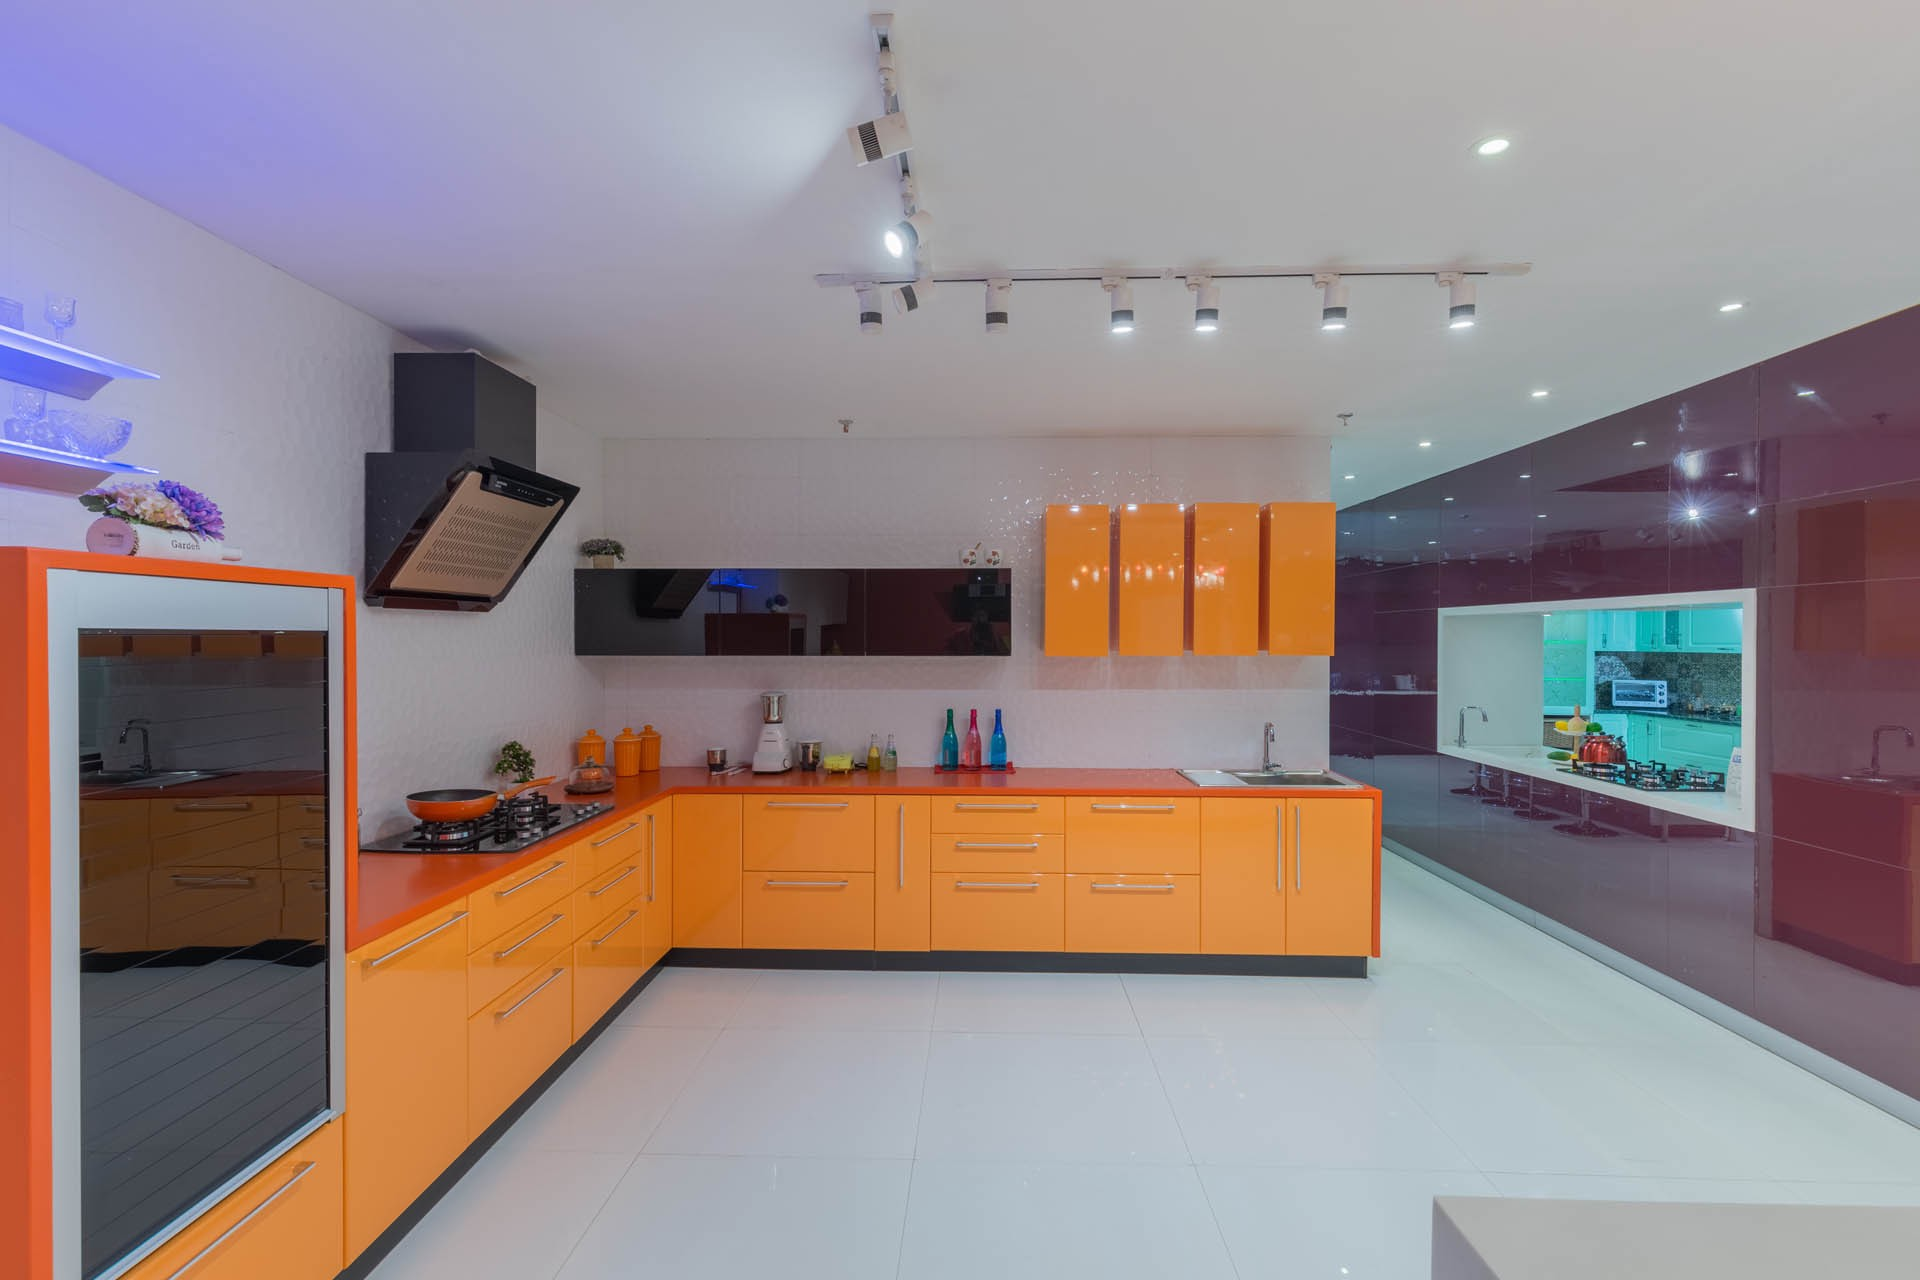 Modular Kitchens India A Buying Guide For Dummies By Sudhi Ranjan Das Medium